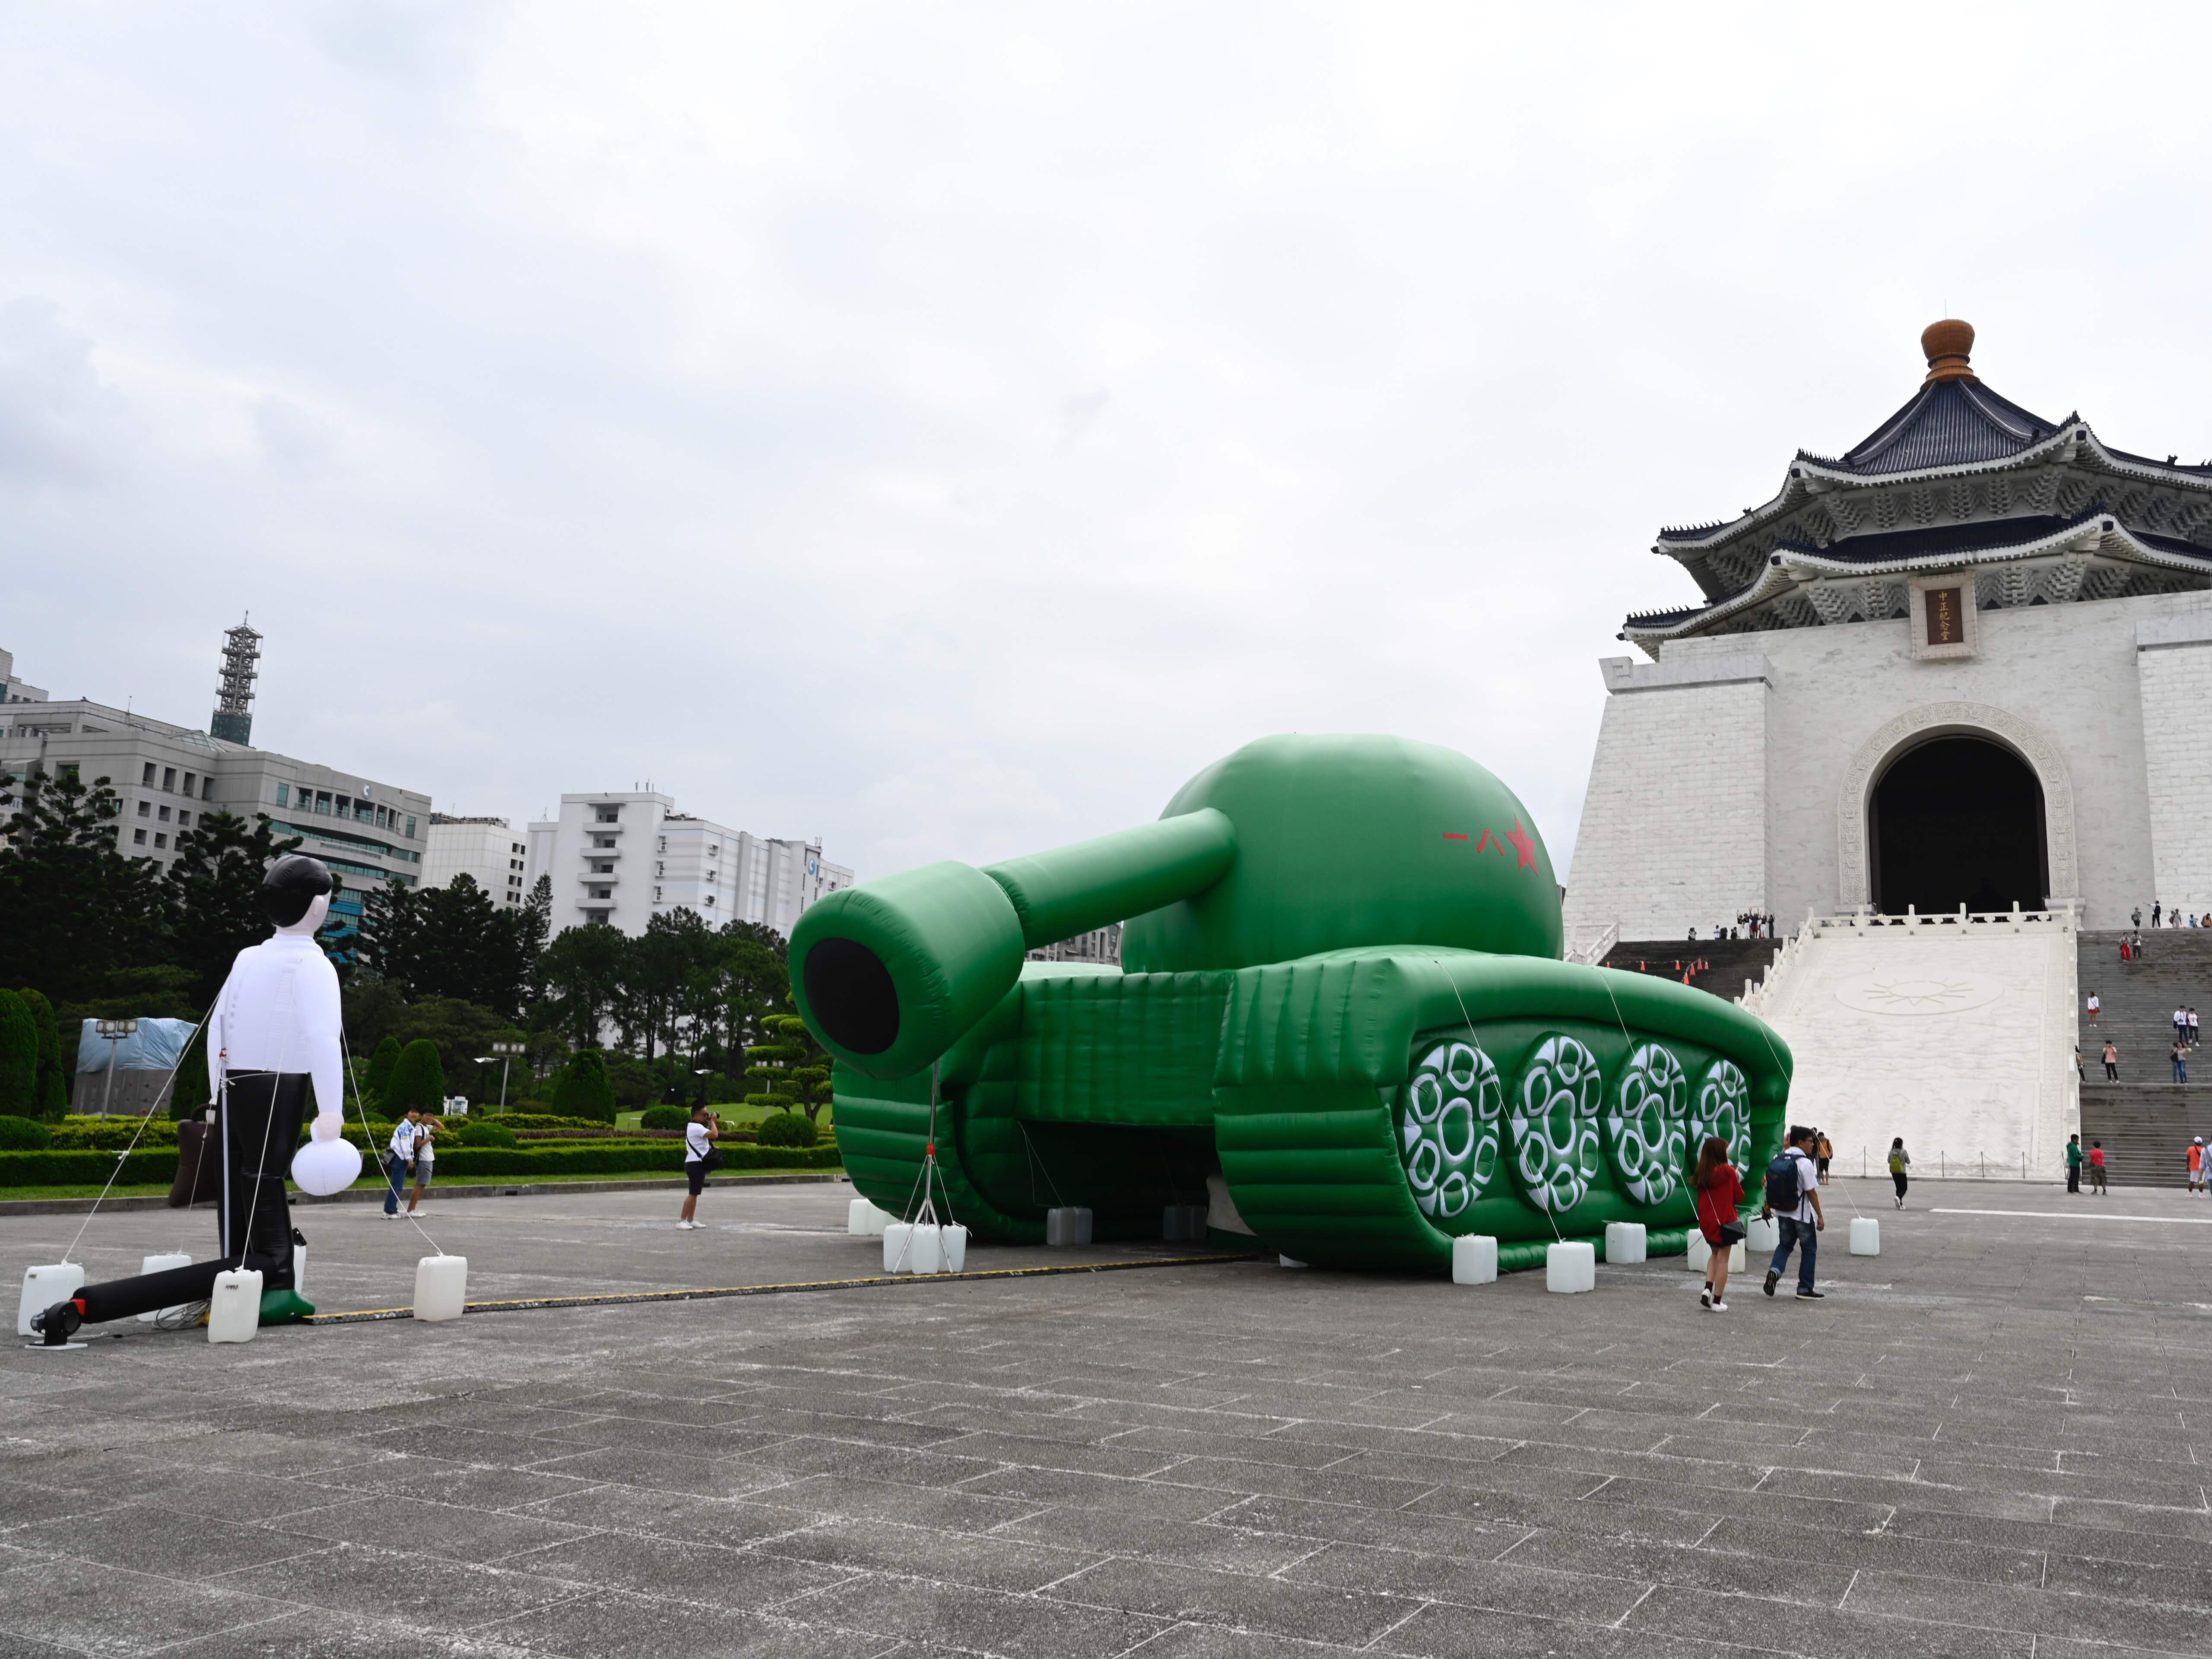 An artwork of Tank Man by dissident Chinese artist Baidiucao is on display in front of Chiang Kai-shek Memorial Hall in Taipei on May 21, 2019.